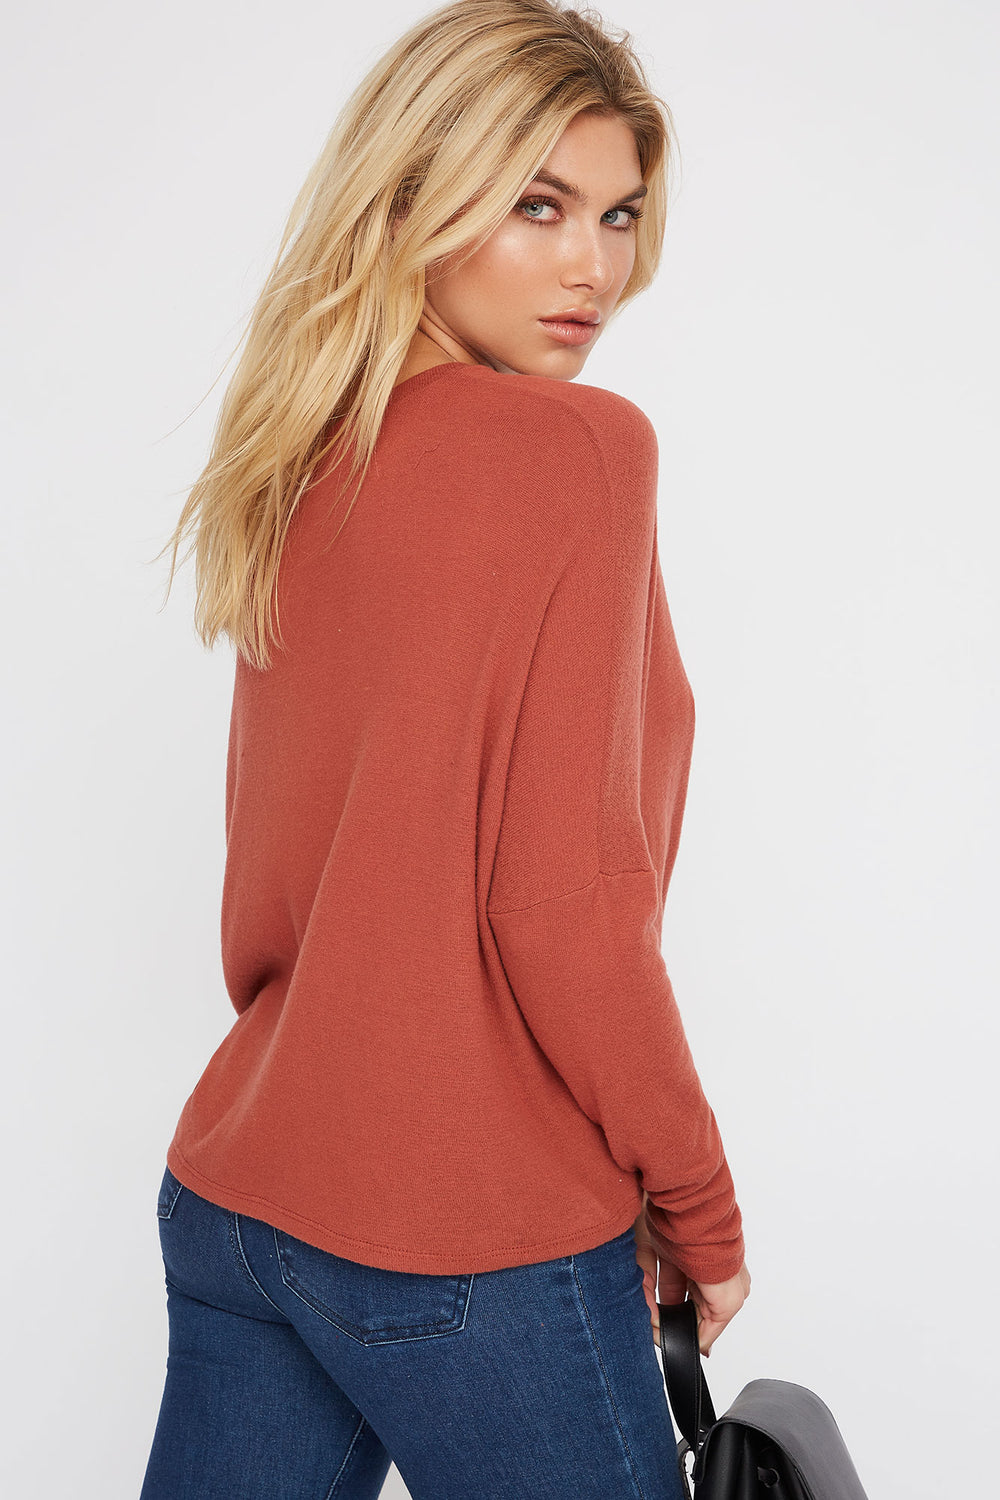 Soft Tie Dolman Long Sleeve Rust